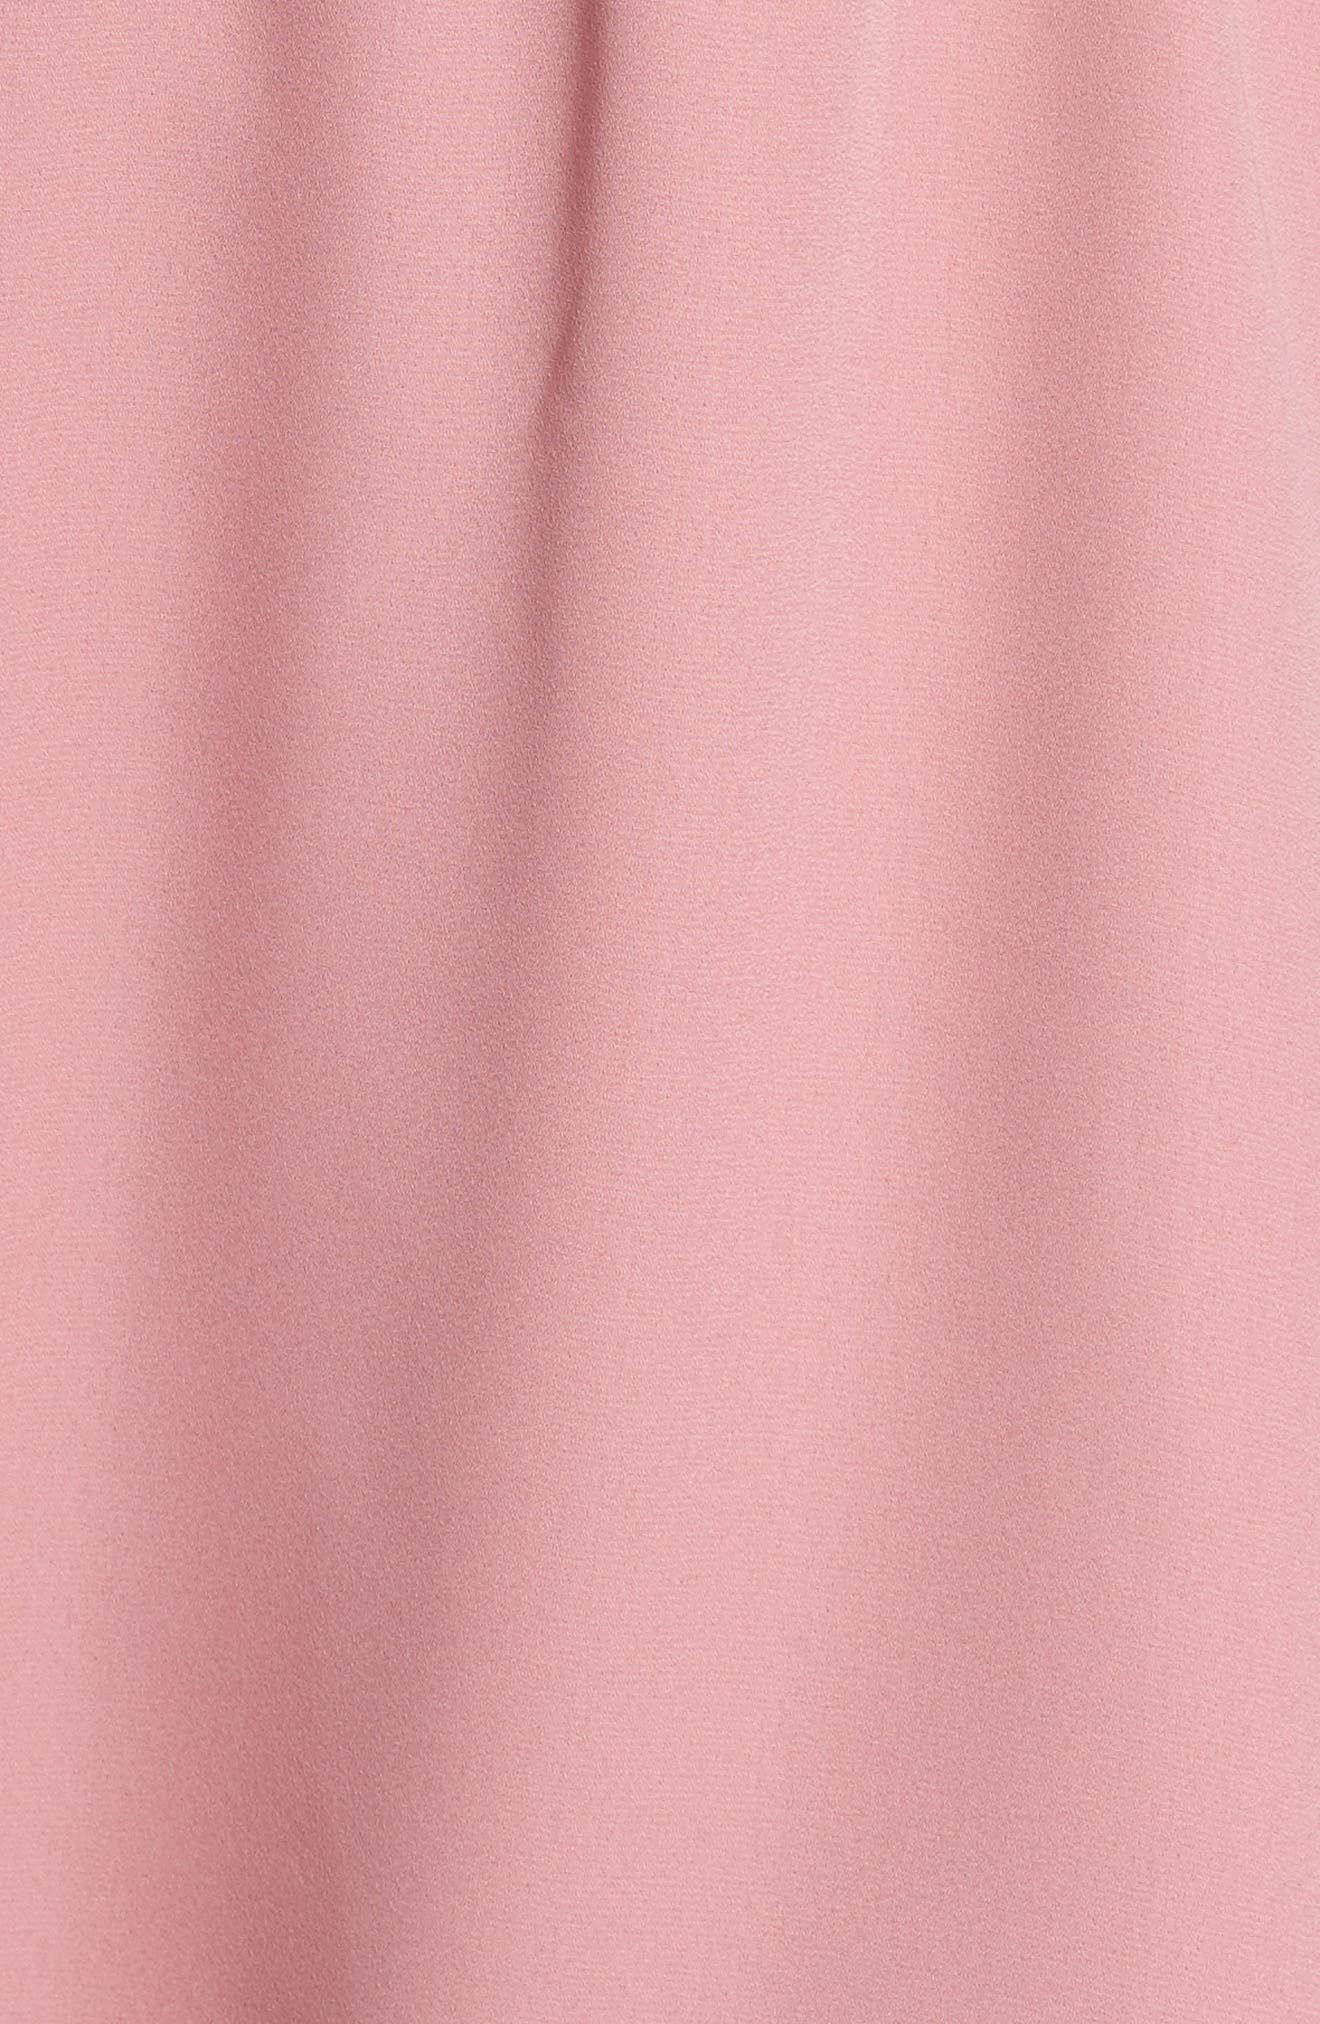 Adrienn Fit & Flare Dress,                             Alternate thumbnail 5, color,                             Dusty Rose